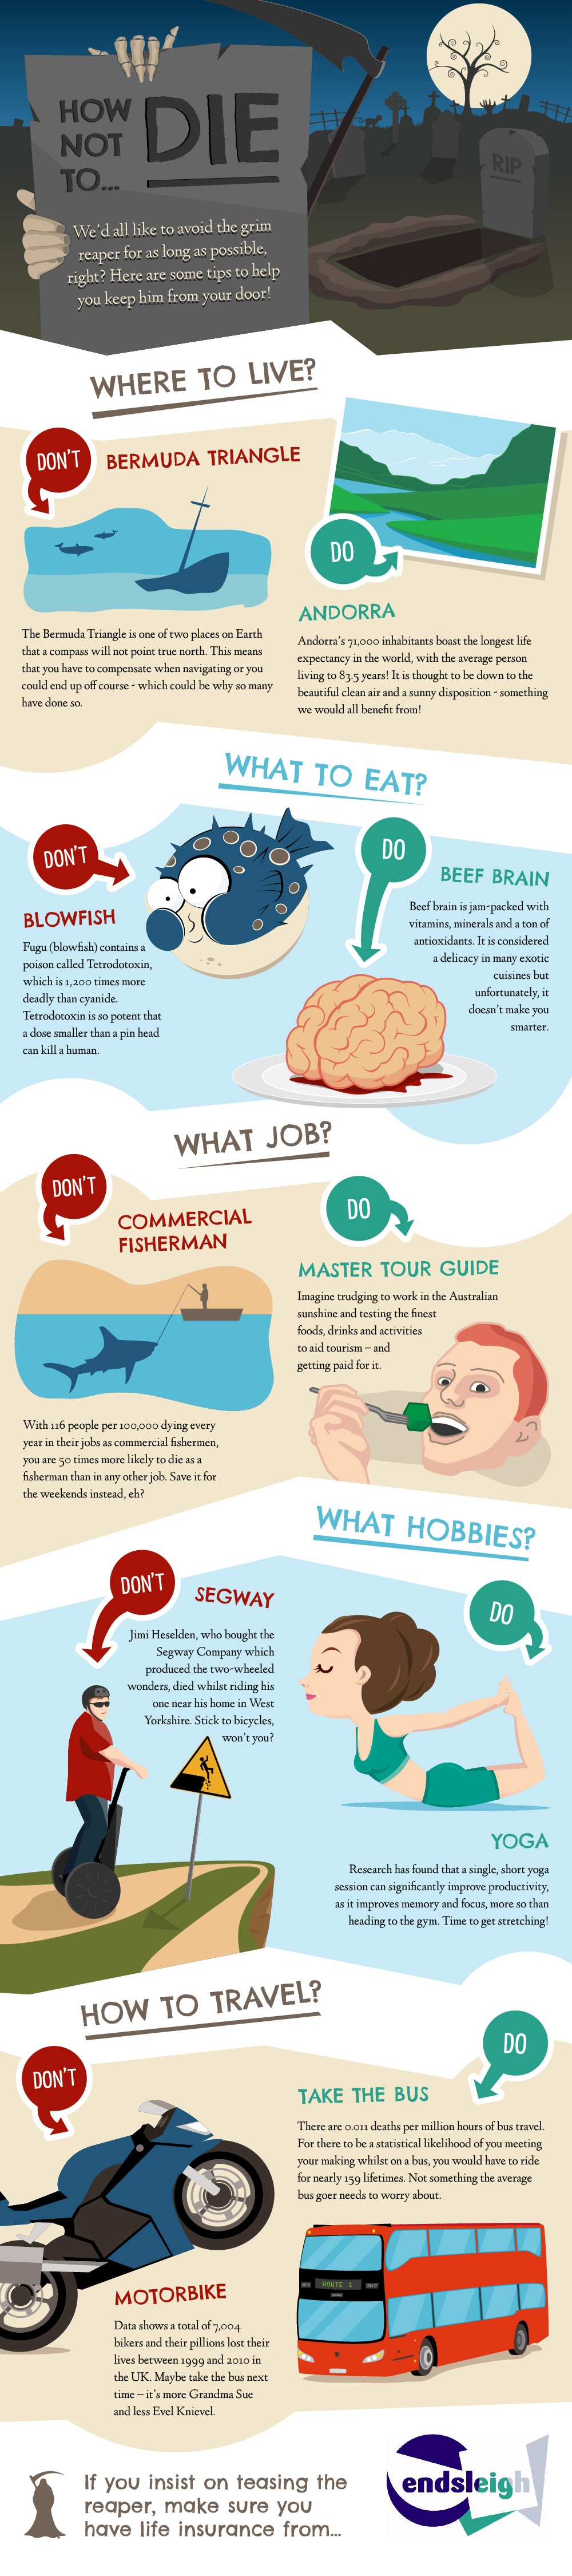 How Not To Die [Infographic]